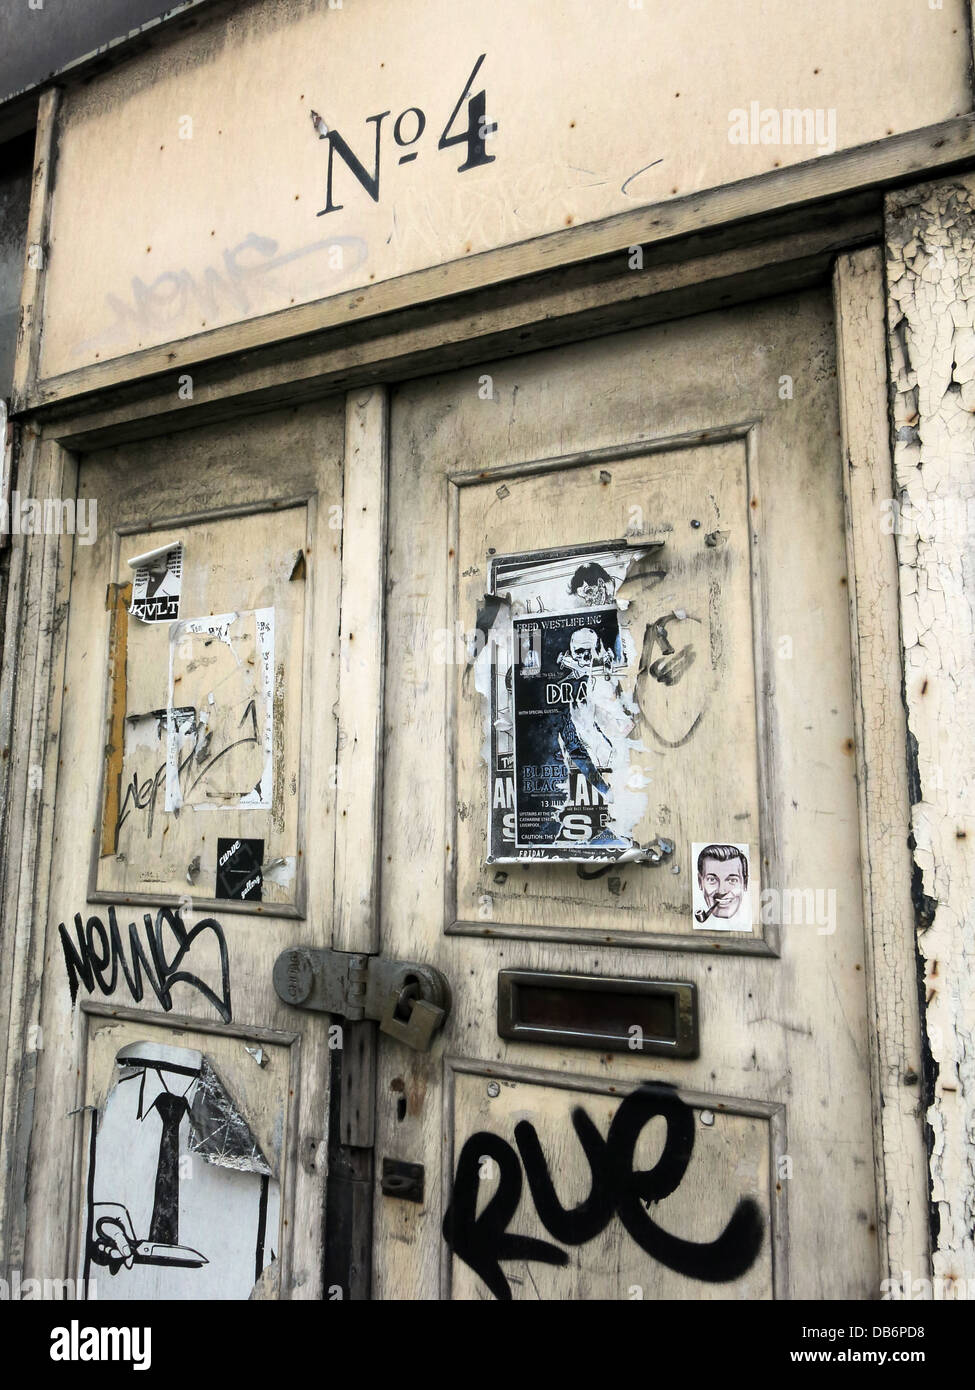 No4, old doorway,abandoned building with posters, Liverpool, Merseyside, North West England, UK - Stock Image